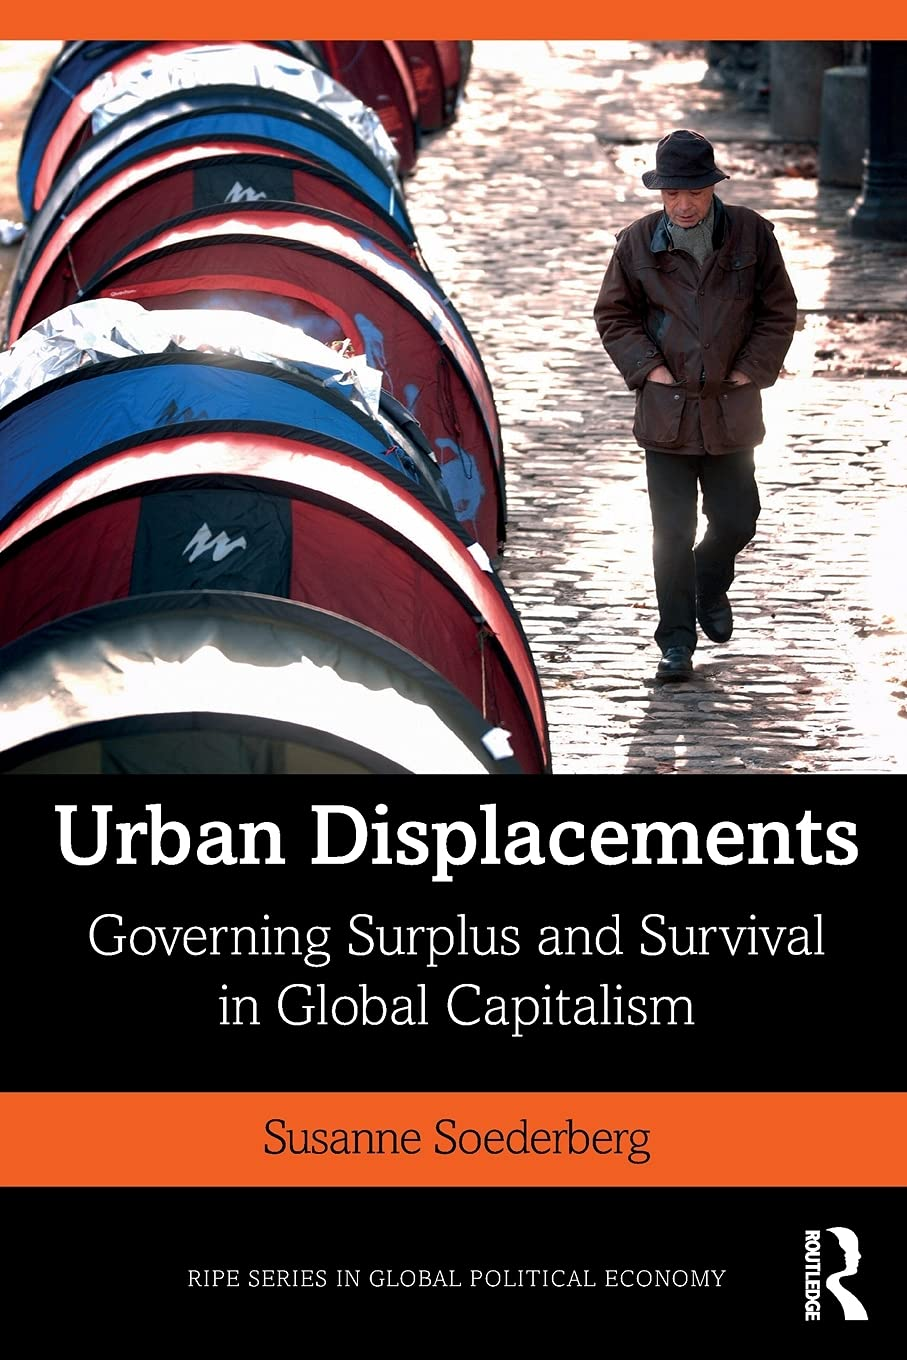 Urban Displacement book cover